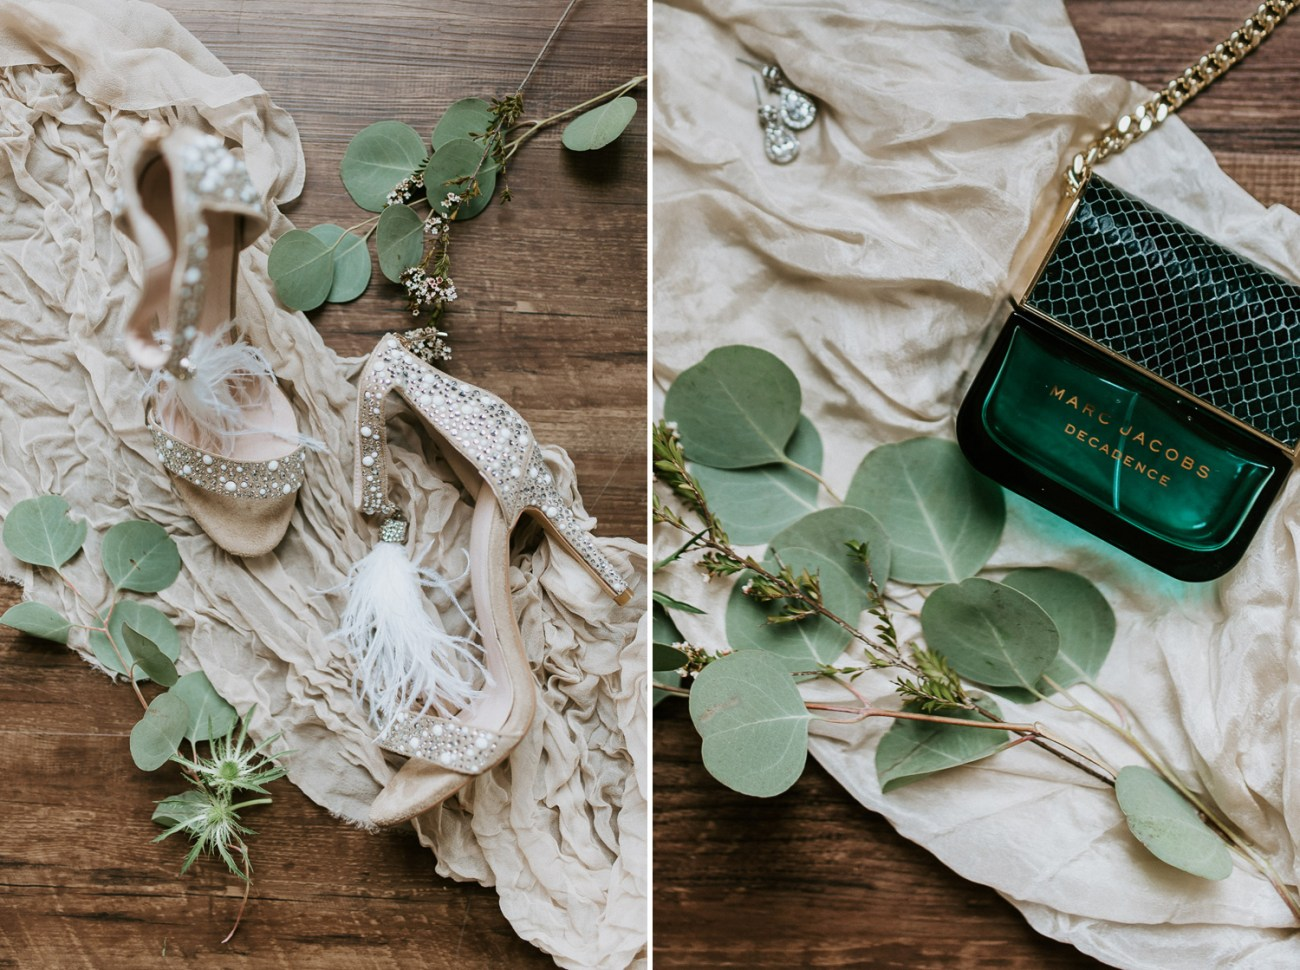 Fun and elegant wedding shoes for a boho-inspired wedding